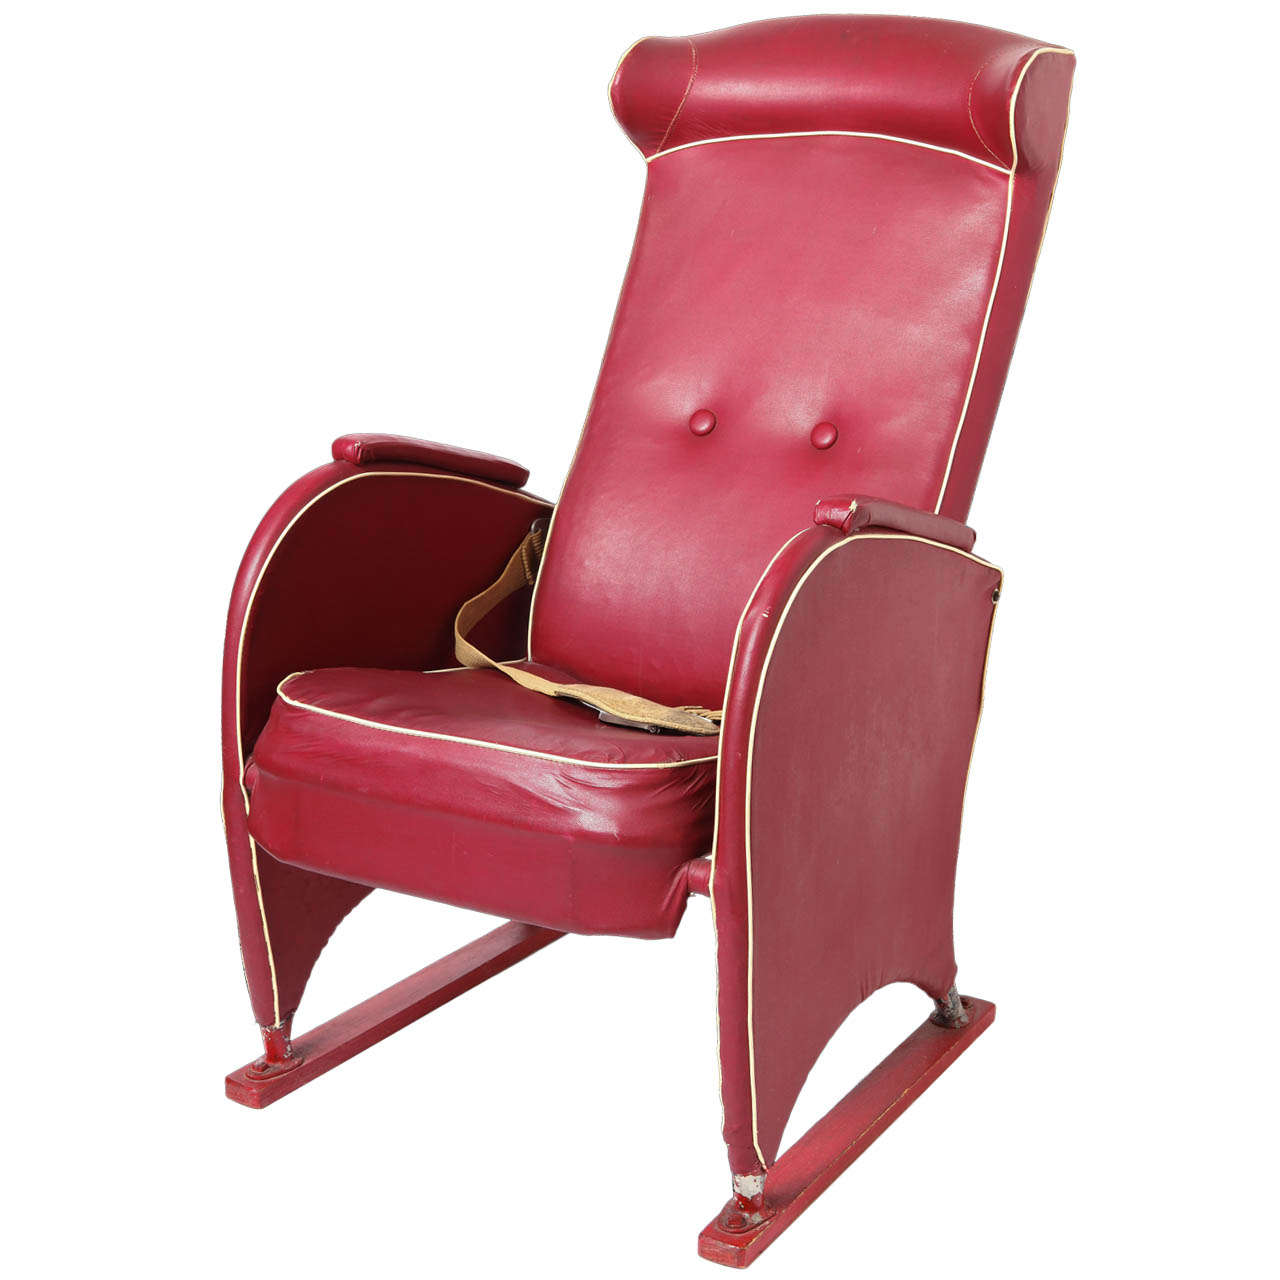 Modernist air france art deco first cabin seat circa 1940 for sale at 1stdibs - Air deco ...